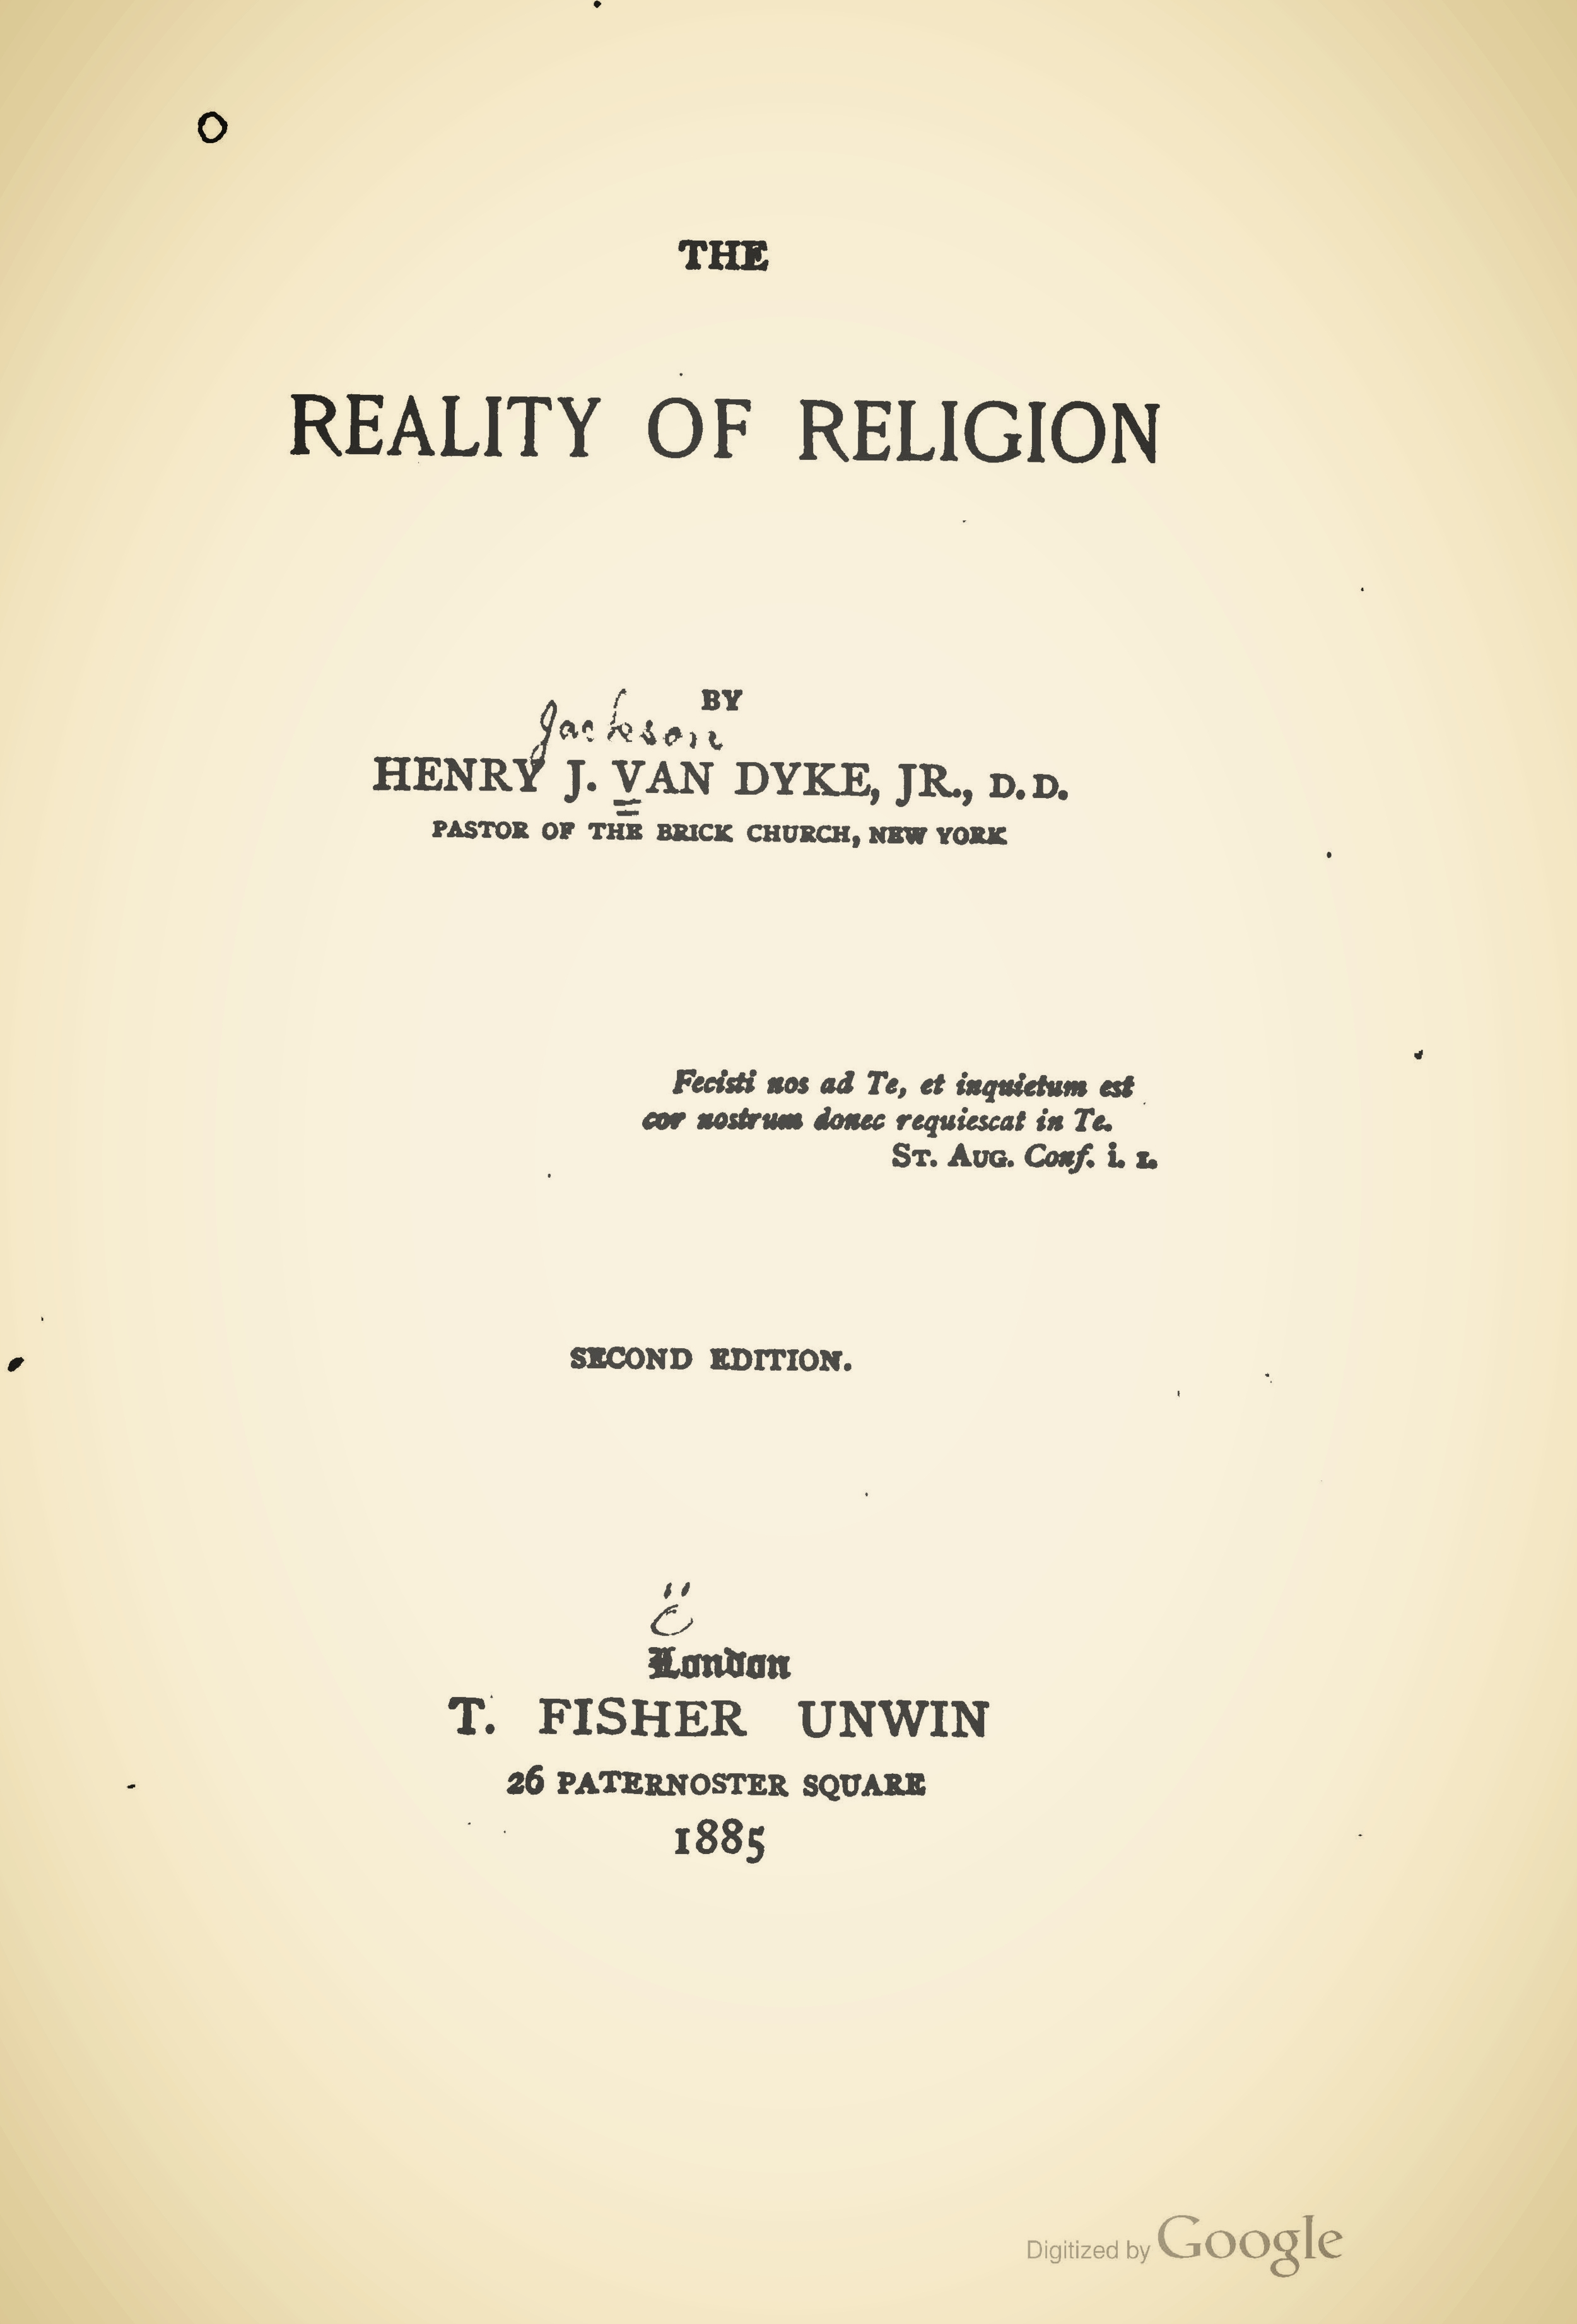 Van Dyke, Jr., Henry, The Reality of Religion Title Page.jpg